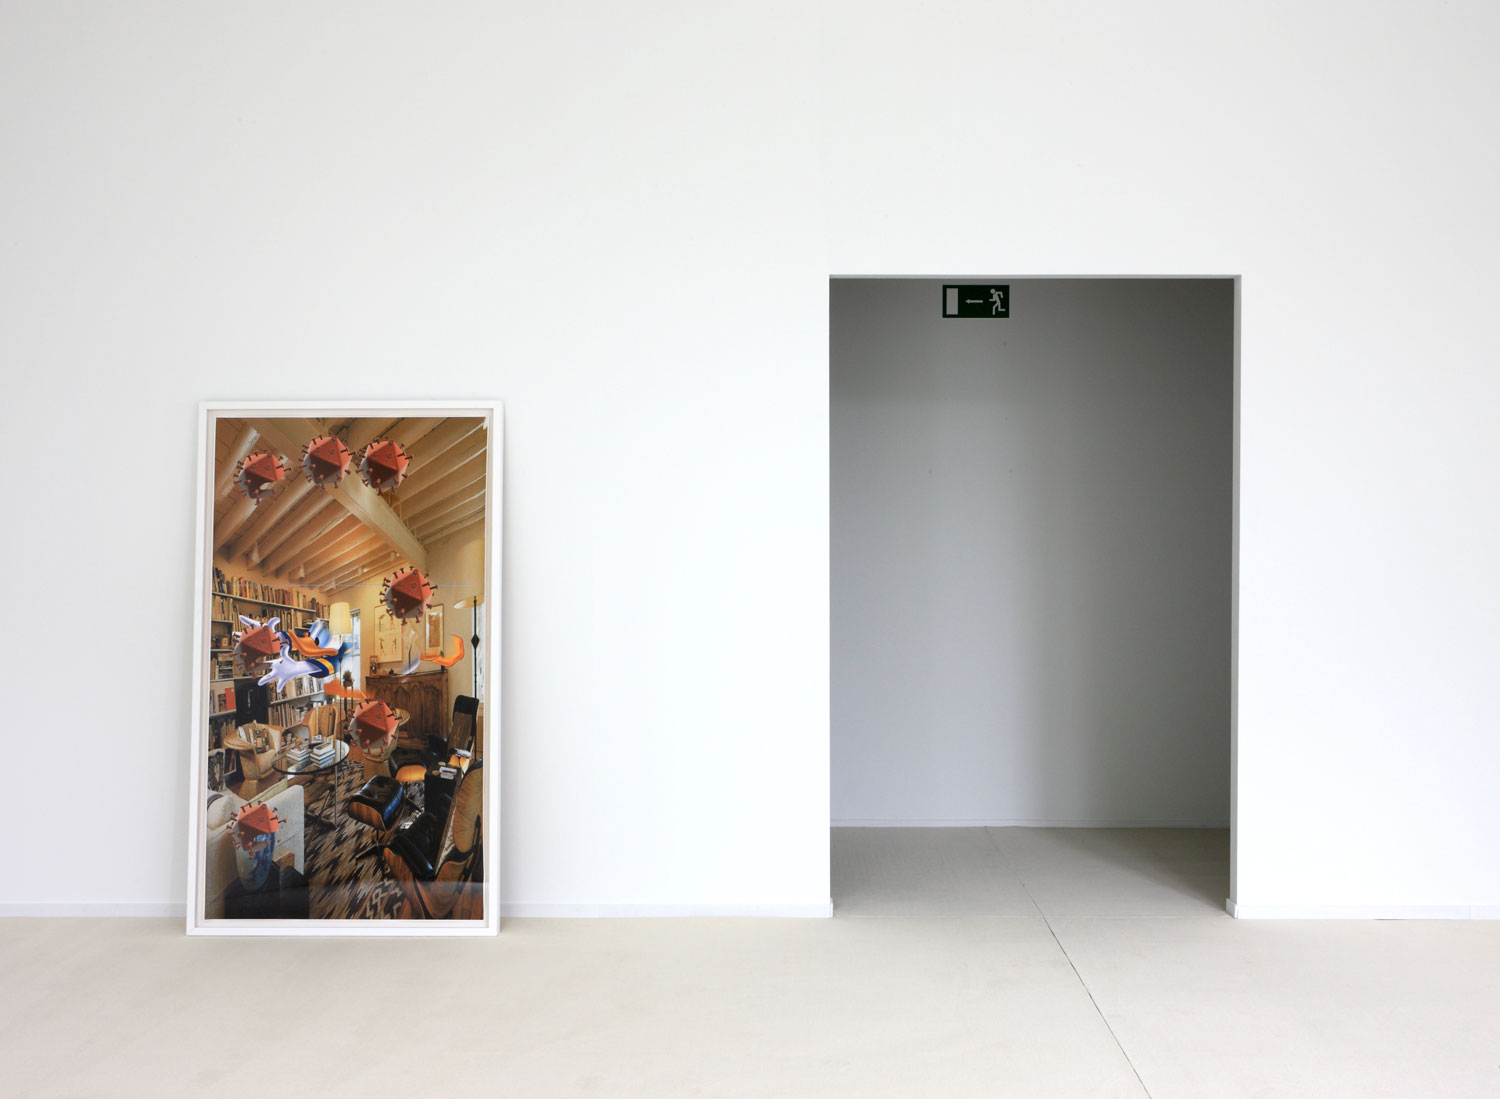 Untitled (2012) Installation view at S.M.A.K., Gent (2013)